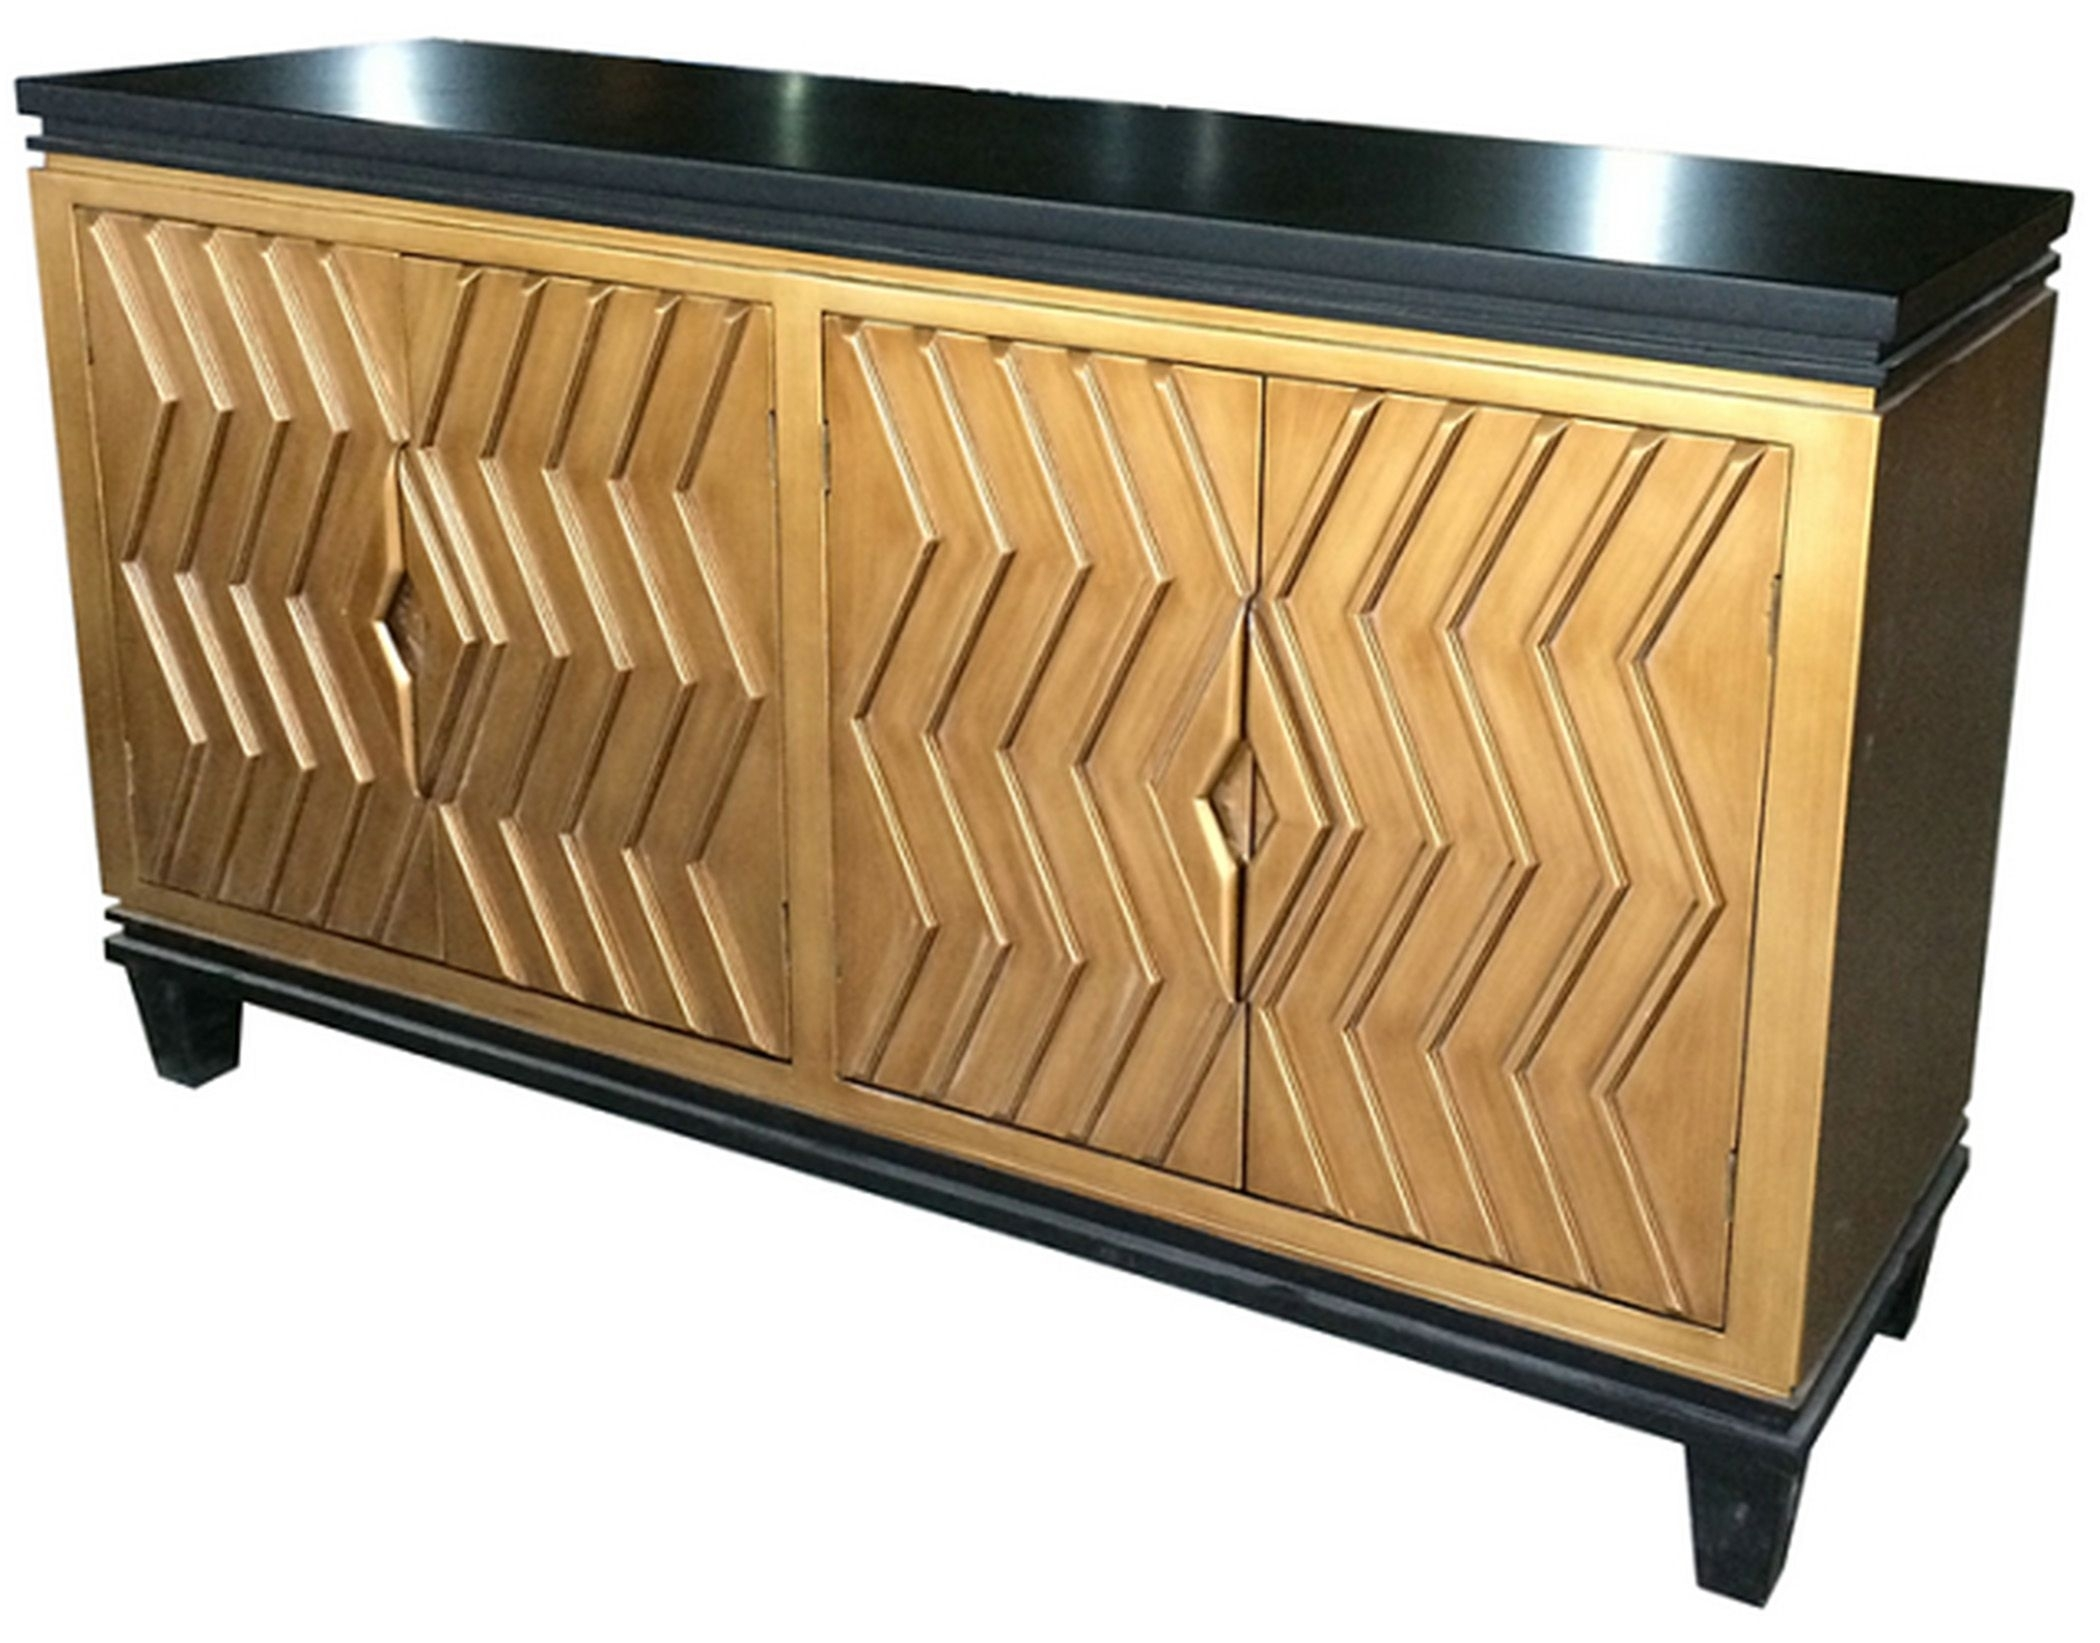 Alessio Art Deco Sideboard 4 Doors, Black/gold Material: Mdf throughout Dark Smoked Oak With White Marble Top Sideboards (Image 2 of 30)